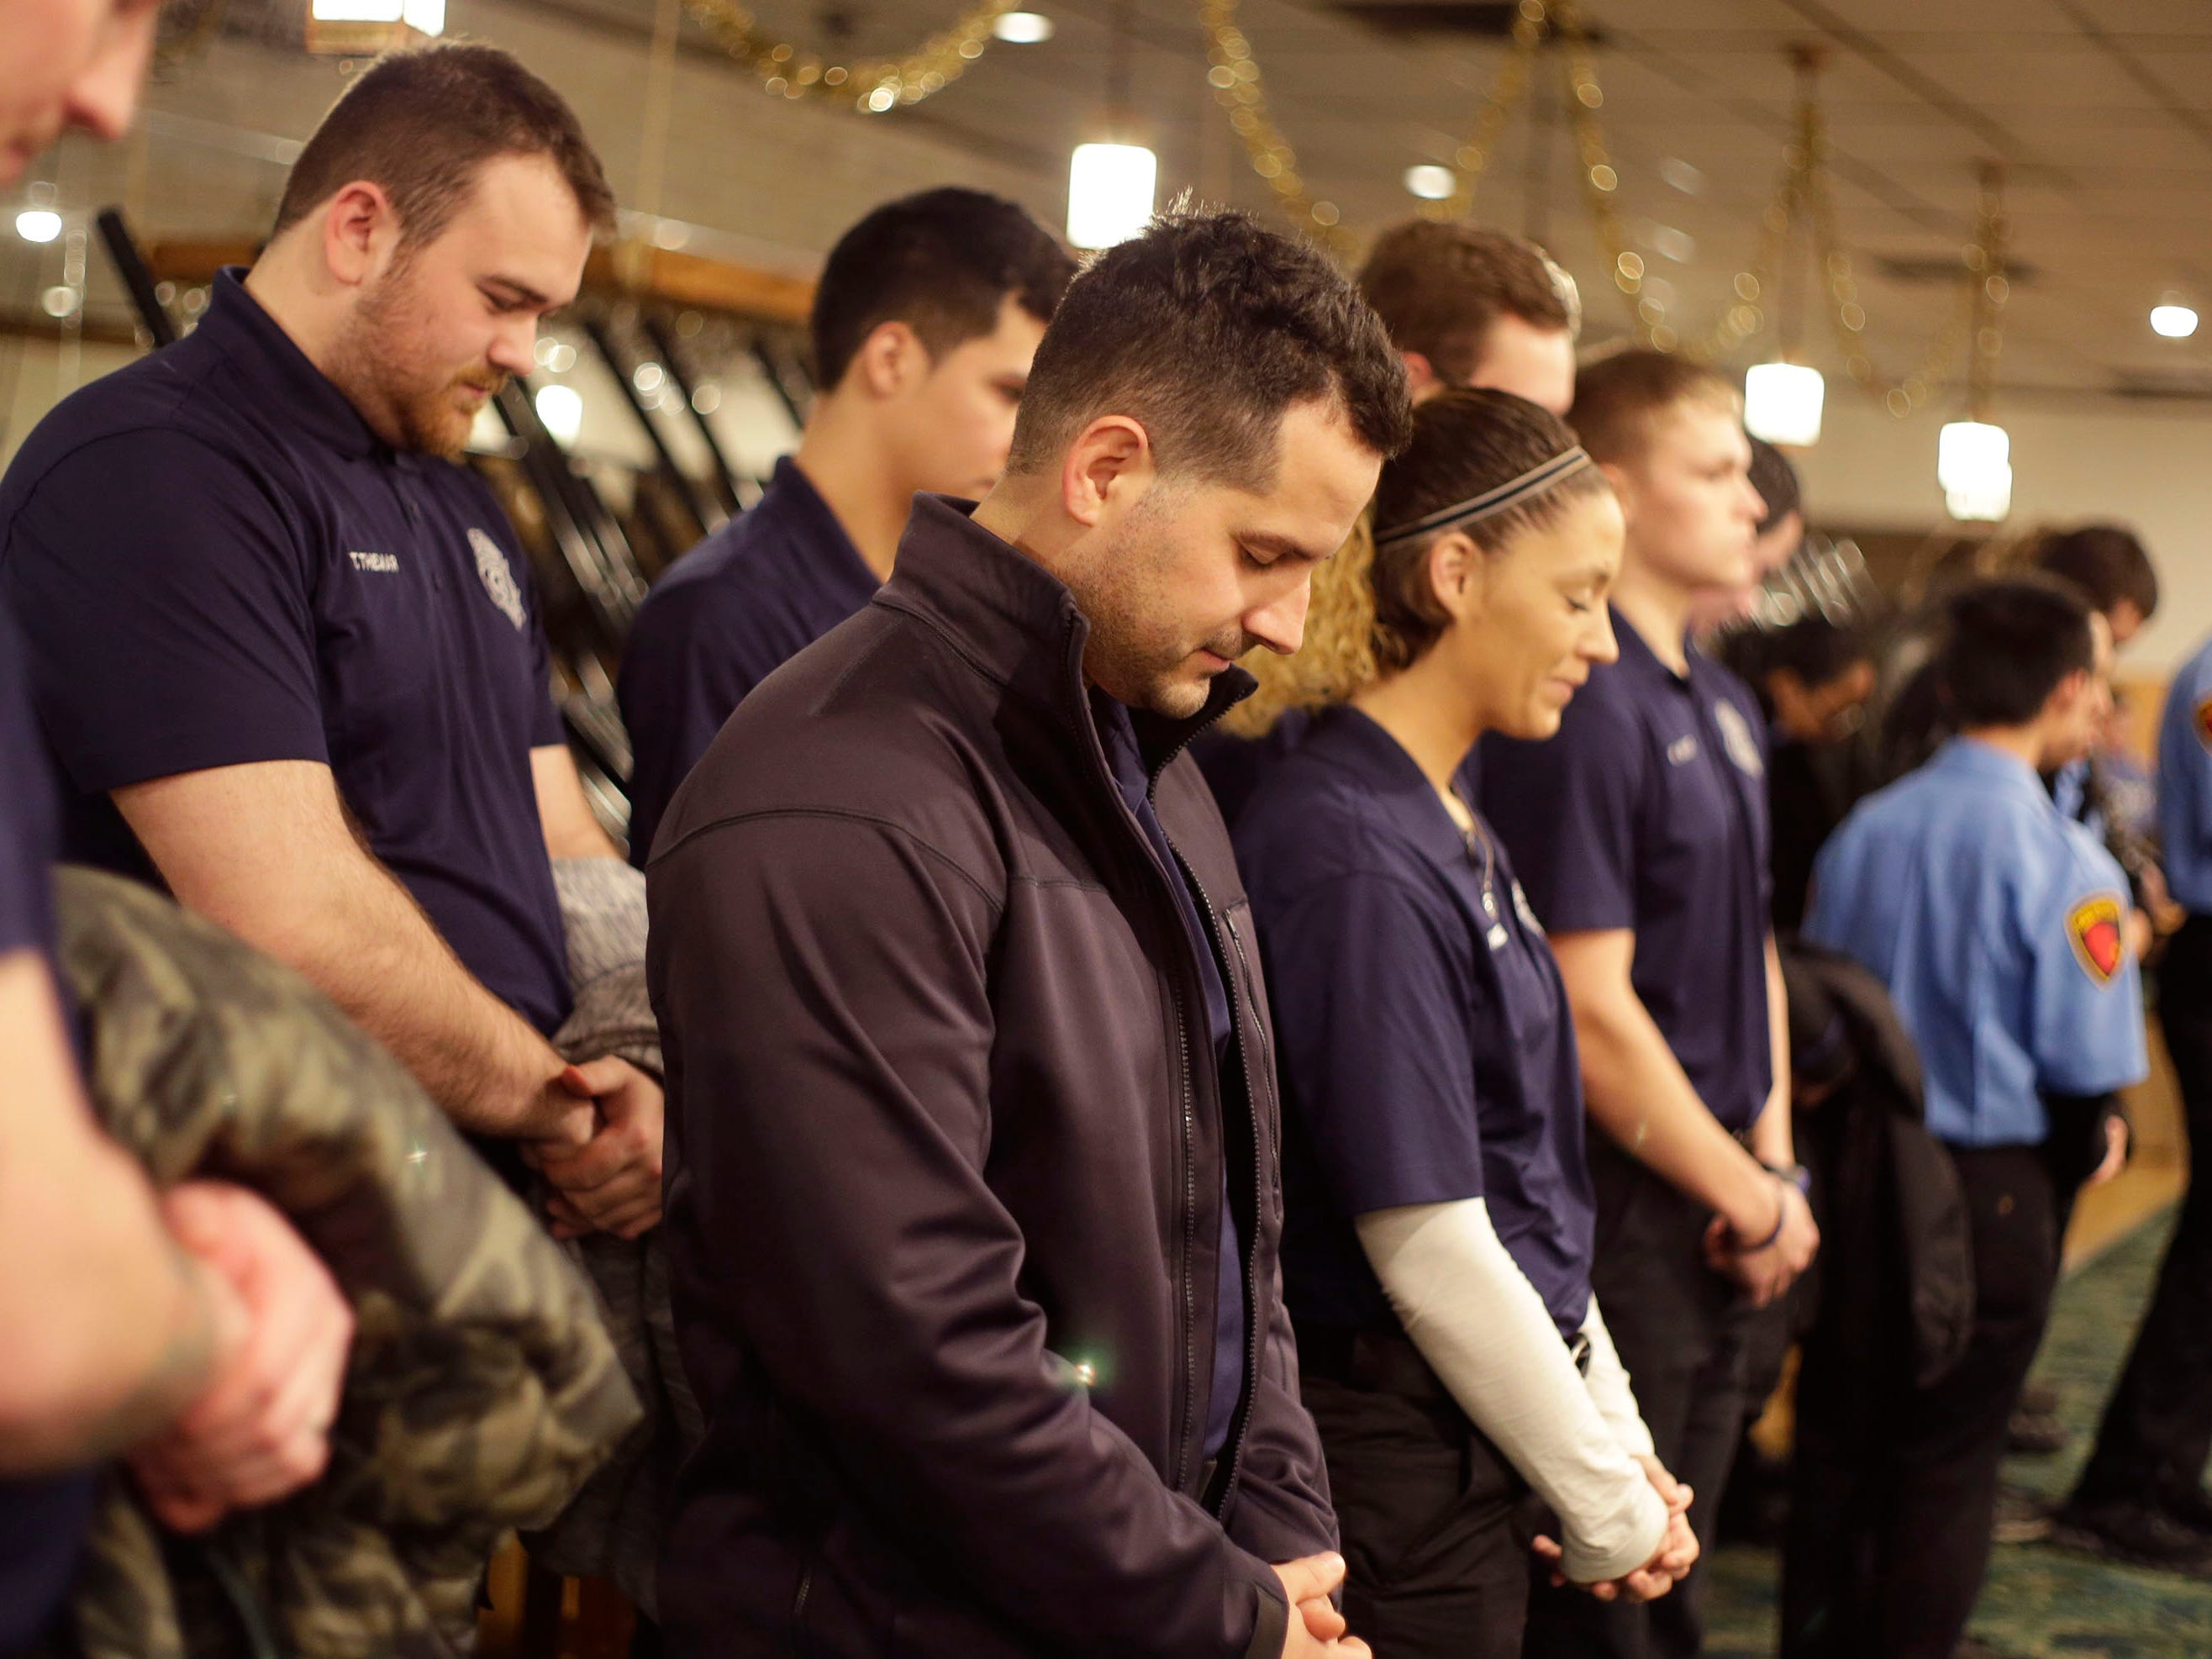 Officers bow their heads in prayer as a police chaplain offers a prayer at the start of the Shop with a Cop program at Lakeshore Lanes, Tuesday, December 4, 2018, in Sheboygan, Wis. The program, in its 21st year, raises funds to give children a chance to buy holiday gifts that they otherwise might not receive.